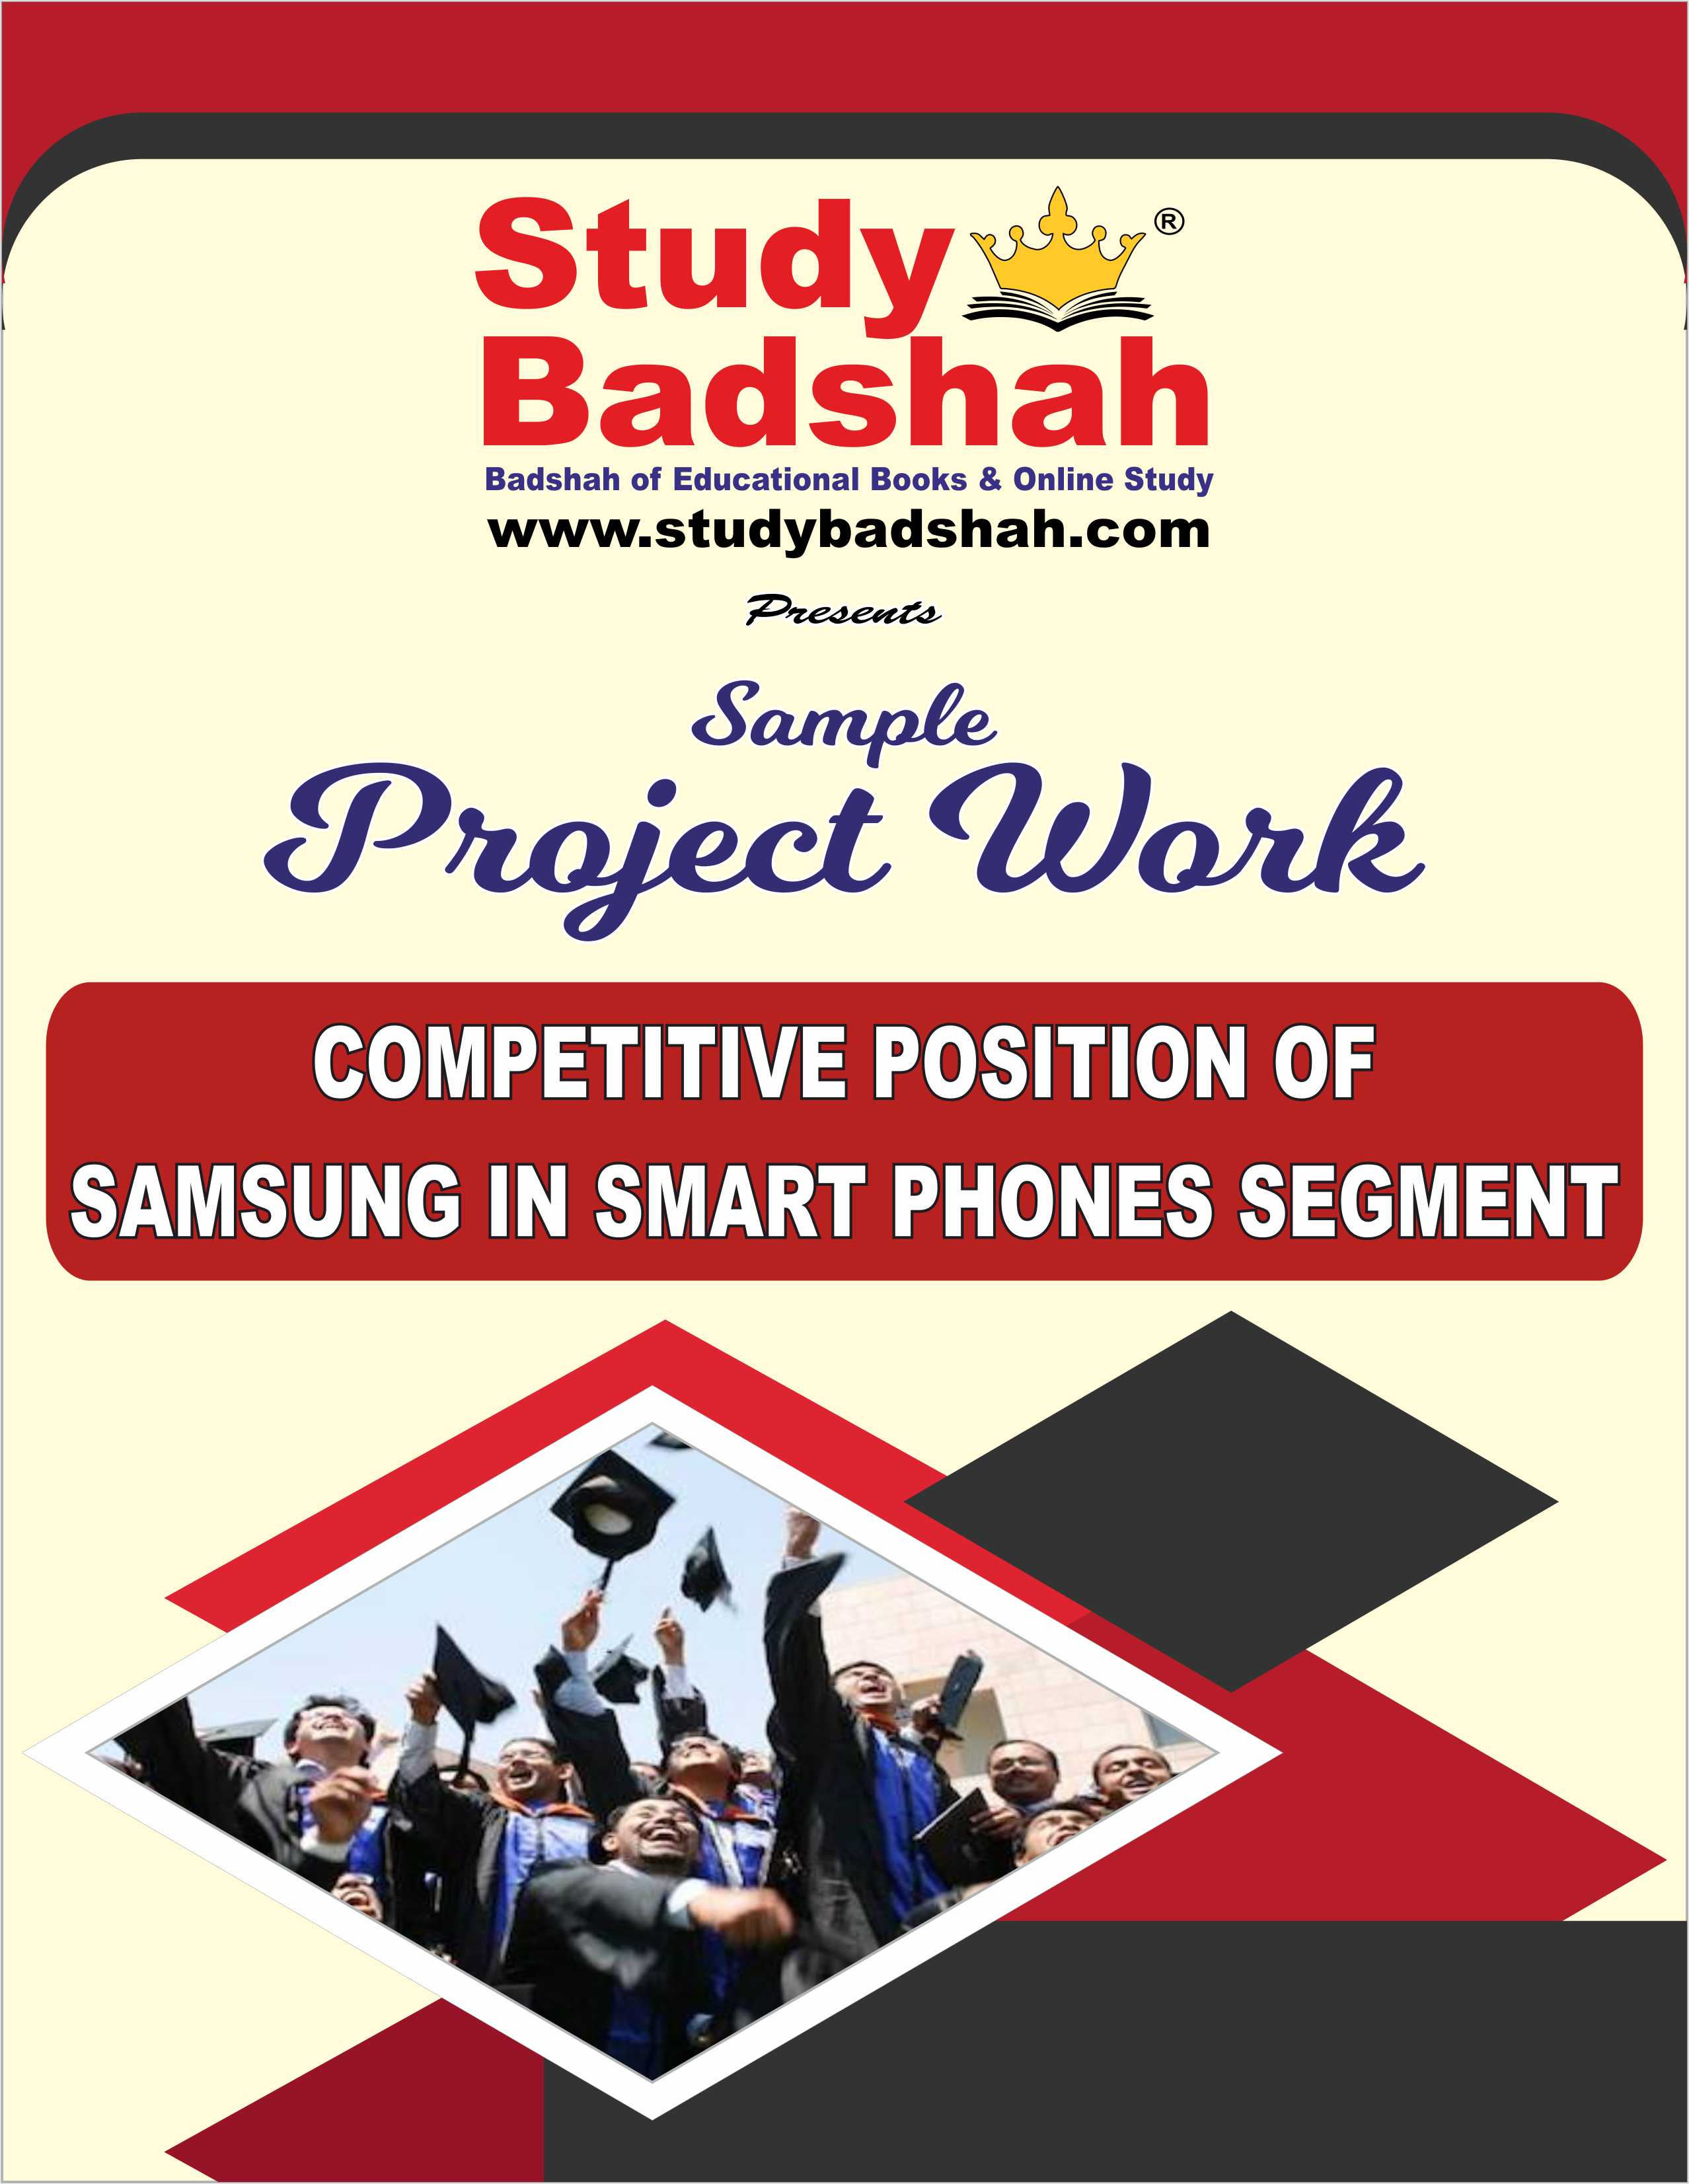 COMPETITIVE POSITION OF SAMSUNG IN SMART PHONES SEGMENT